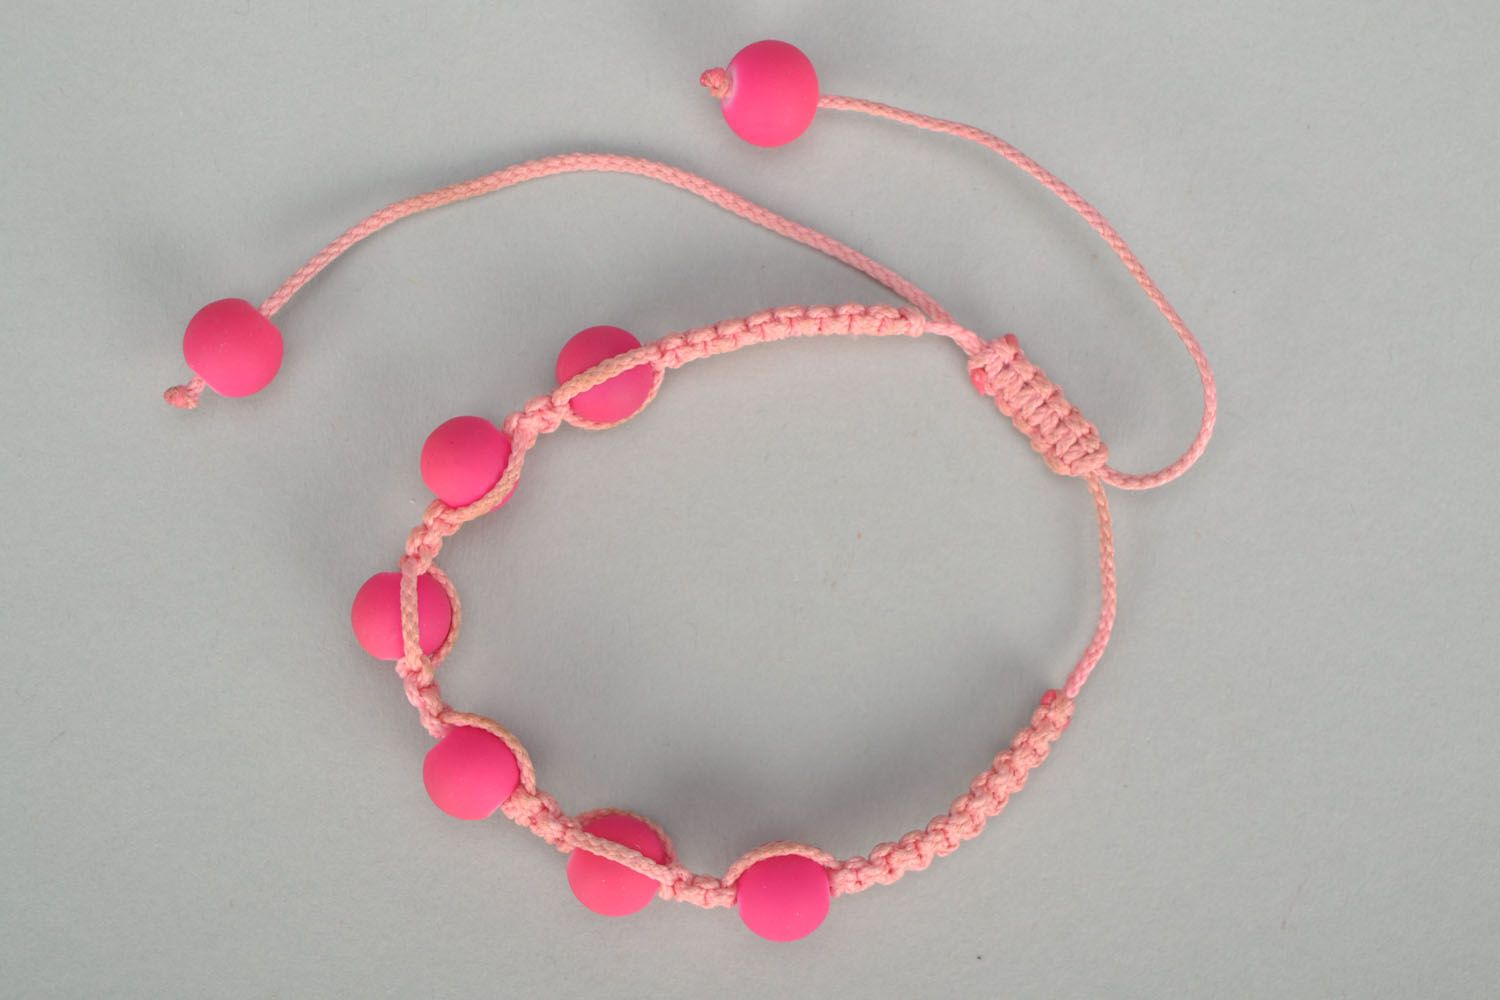 Woven bracelet with pink plastic beads photo 2